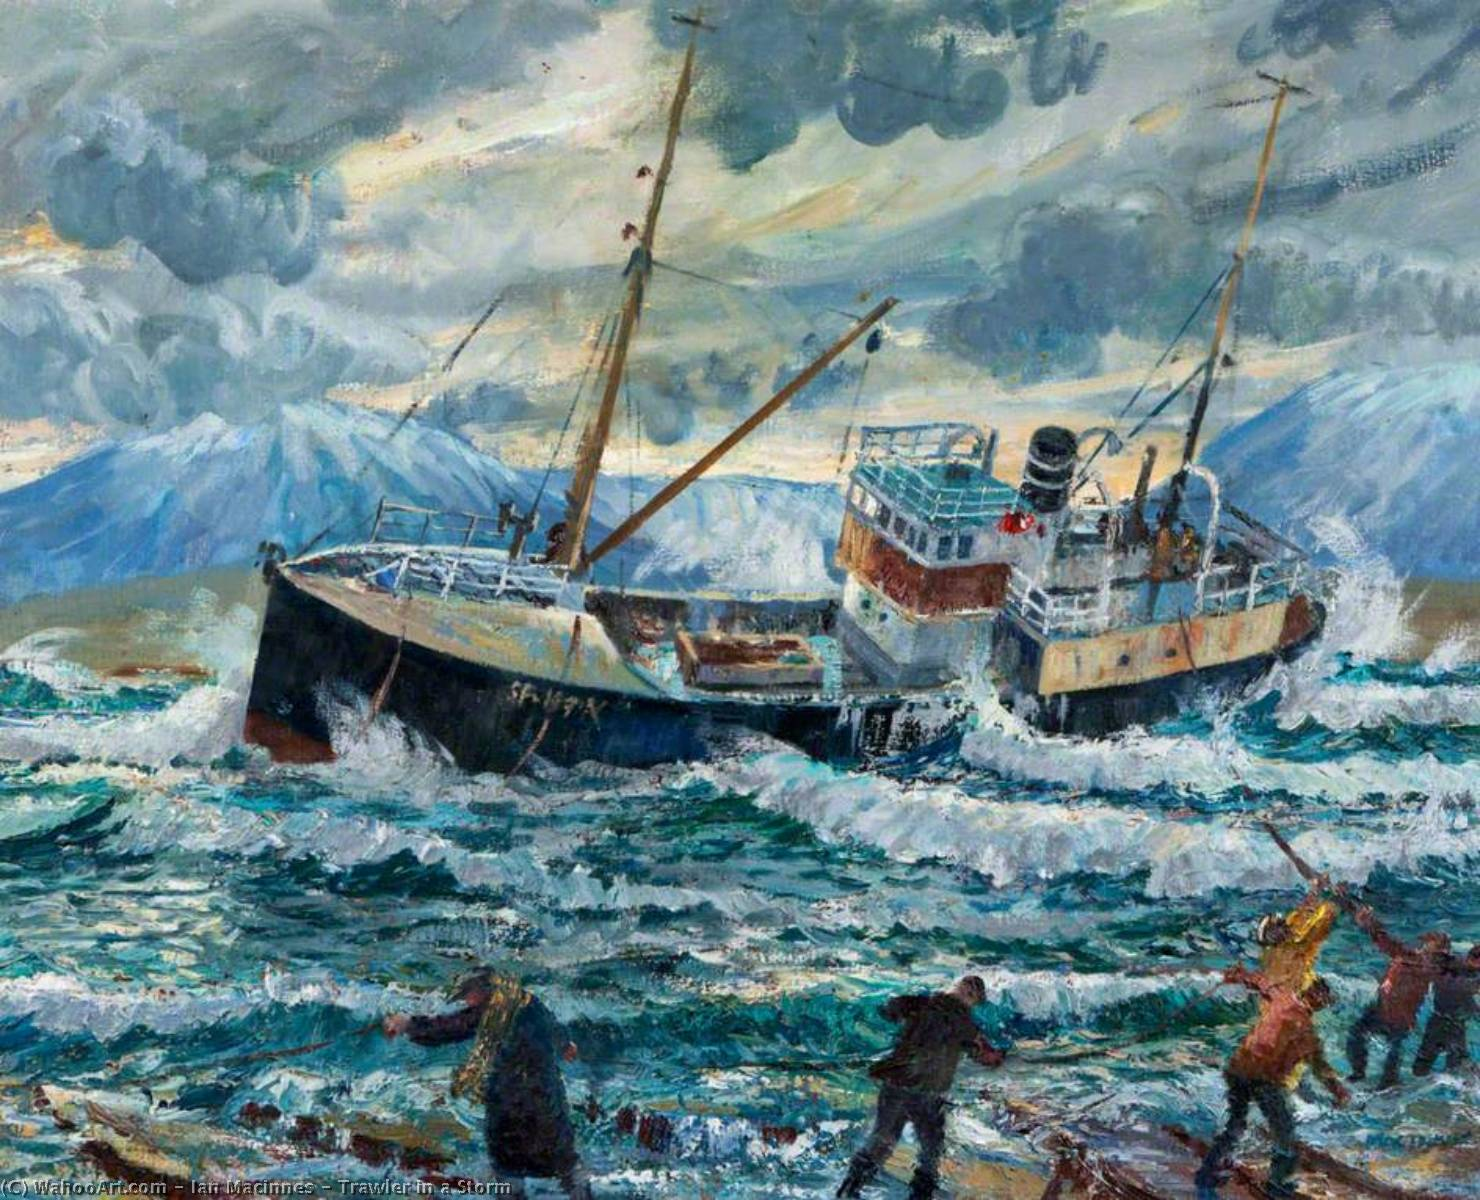 Wikioo.org - The Encyclopedia of Fine Arts - Painting, Artwork by Ian Macinnes - Trawler in a Storm